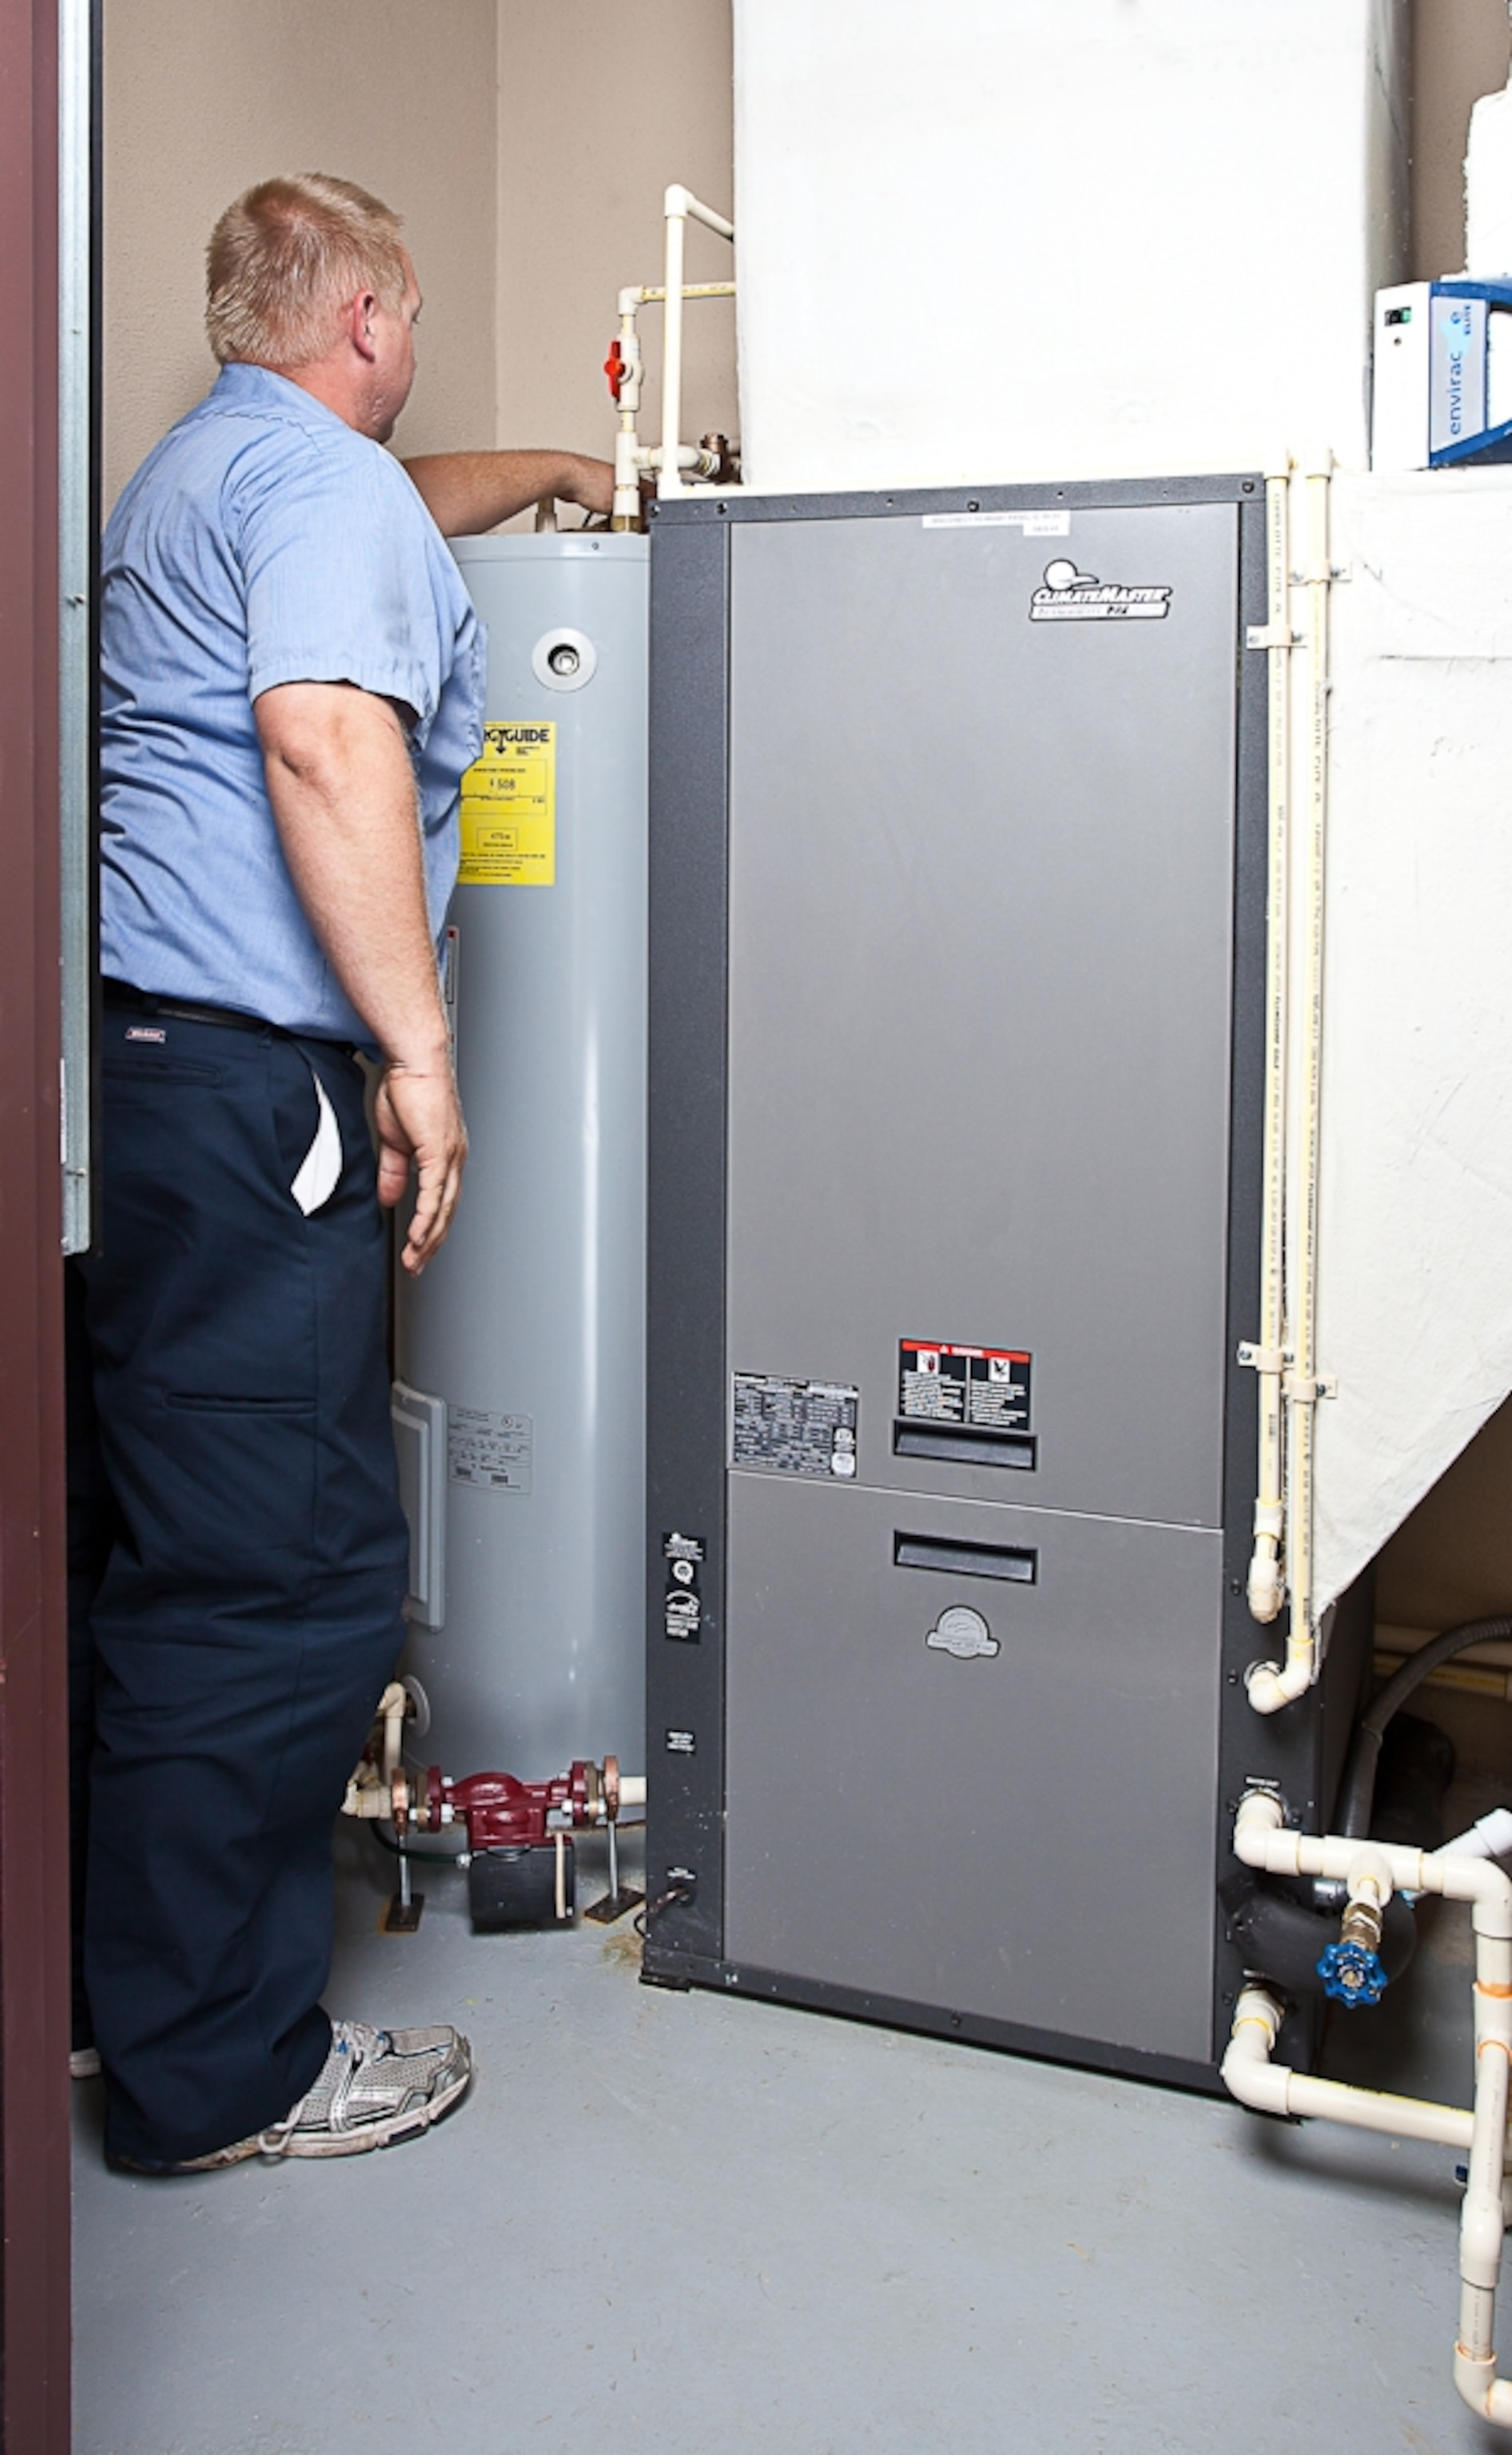 Confused About Getting The Right HVAC Help? This Article Will Help!